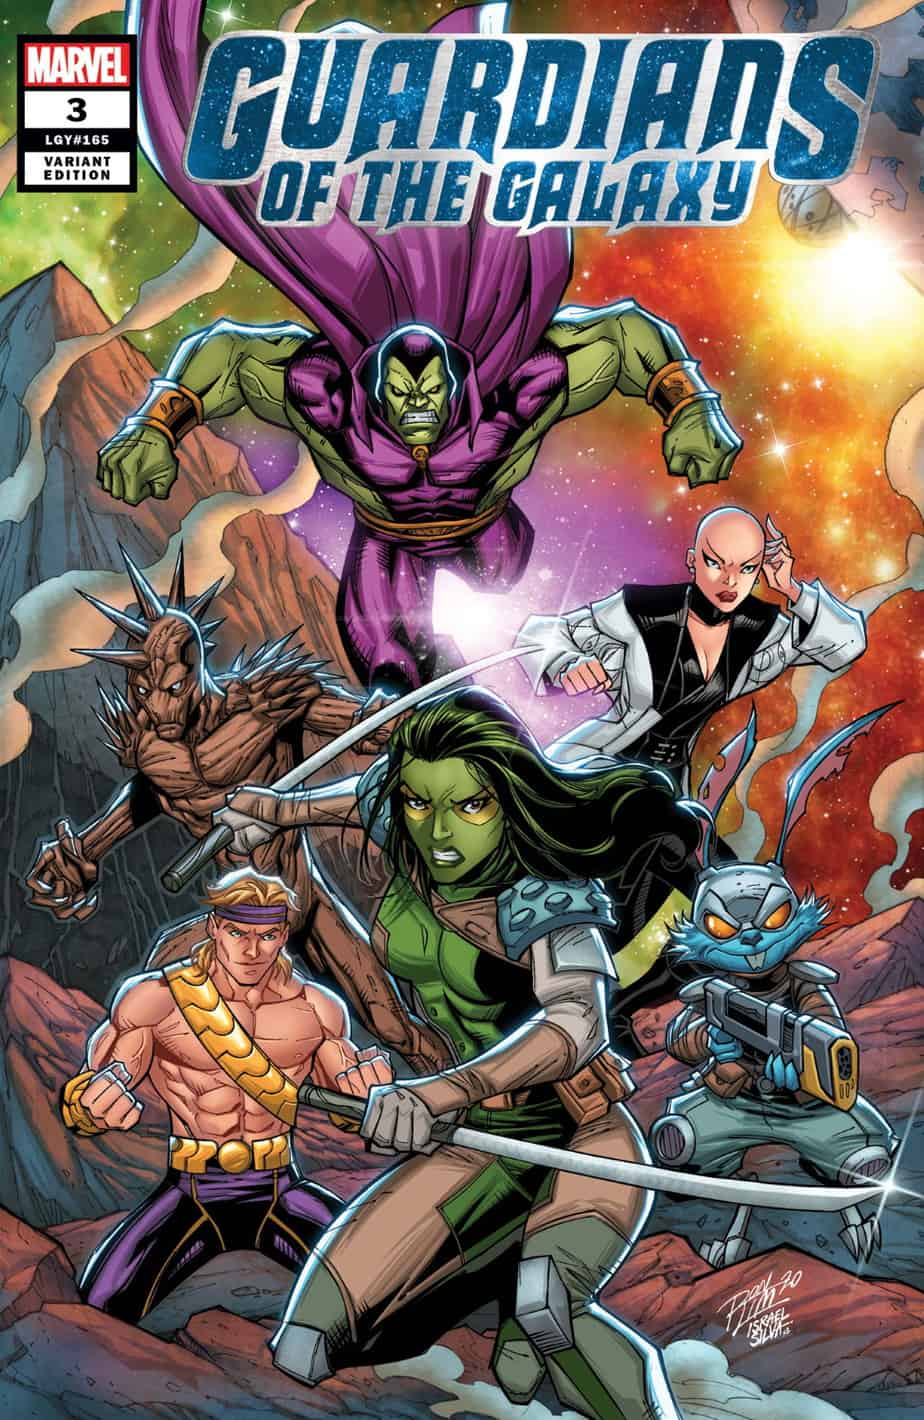 GUARDIANS OF THE GALAXY #3 - Cover B